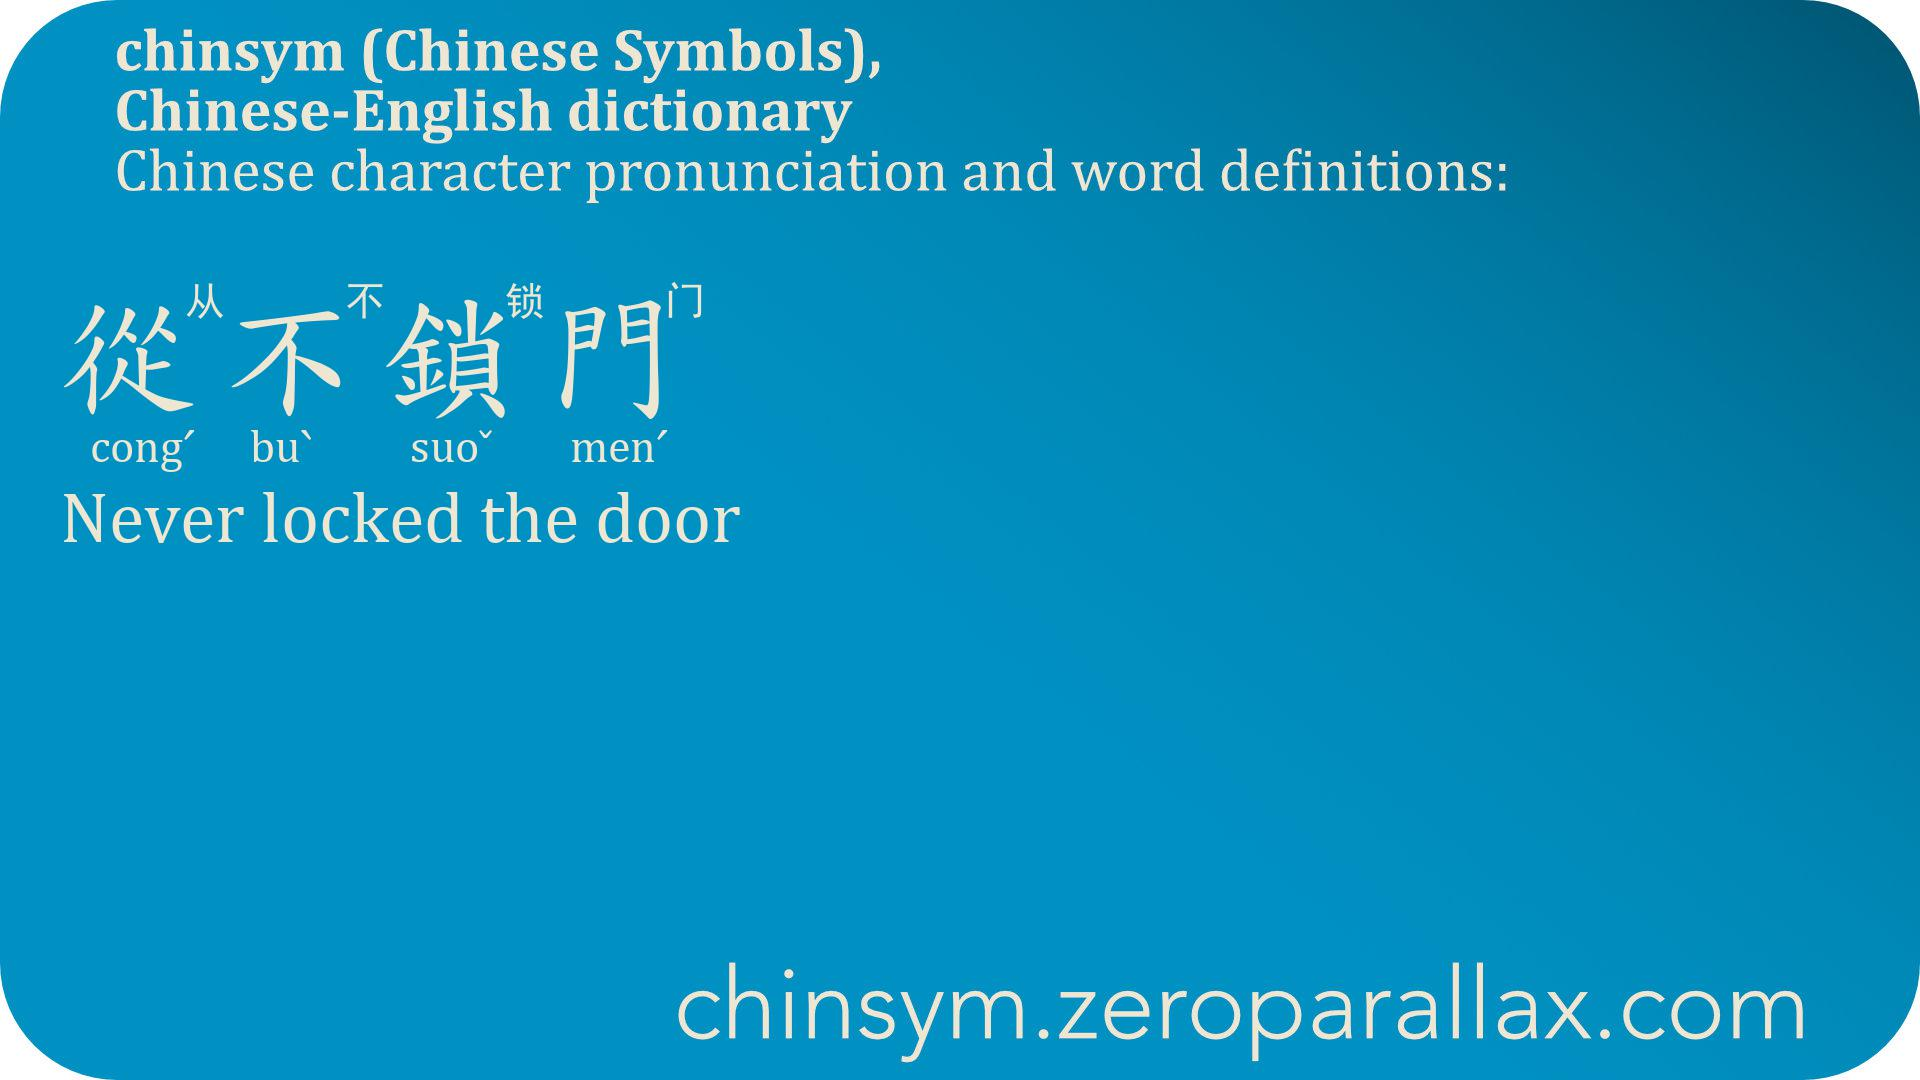 從不鎖門  (congˊ buˋ suoˇ menˊ) 从不锁门 : Never locked the door. chinsym.zeroparallax.com